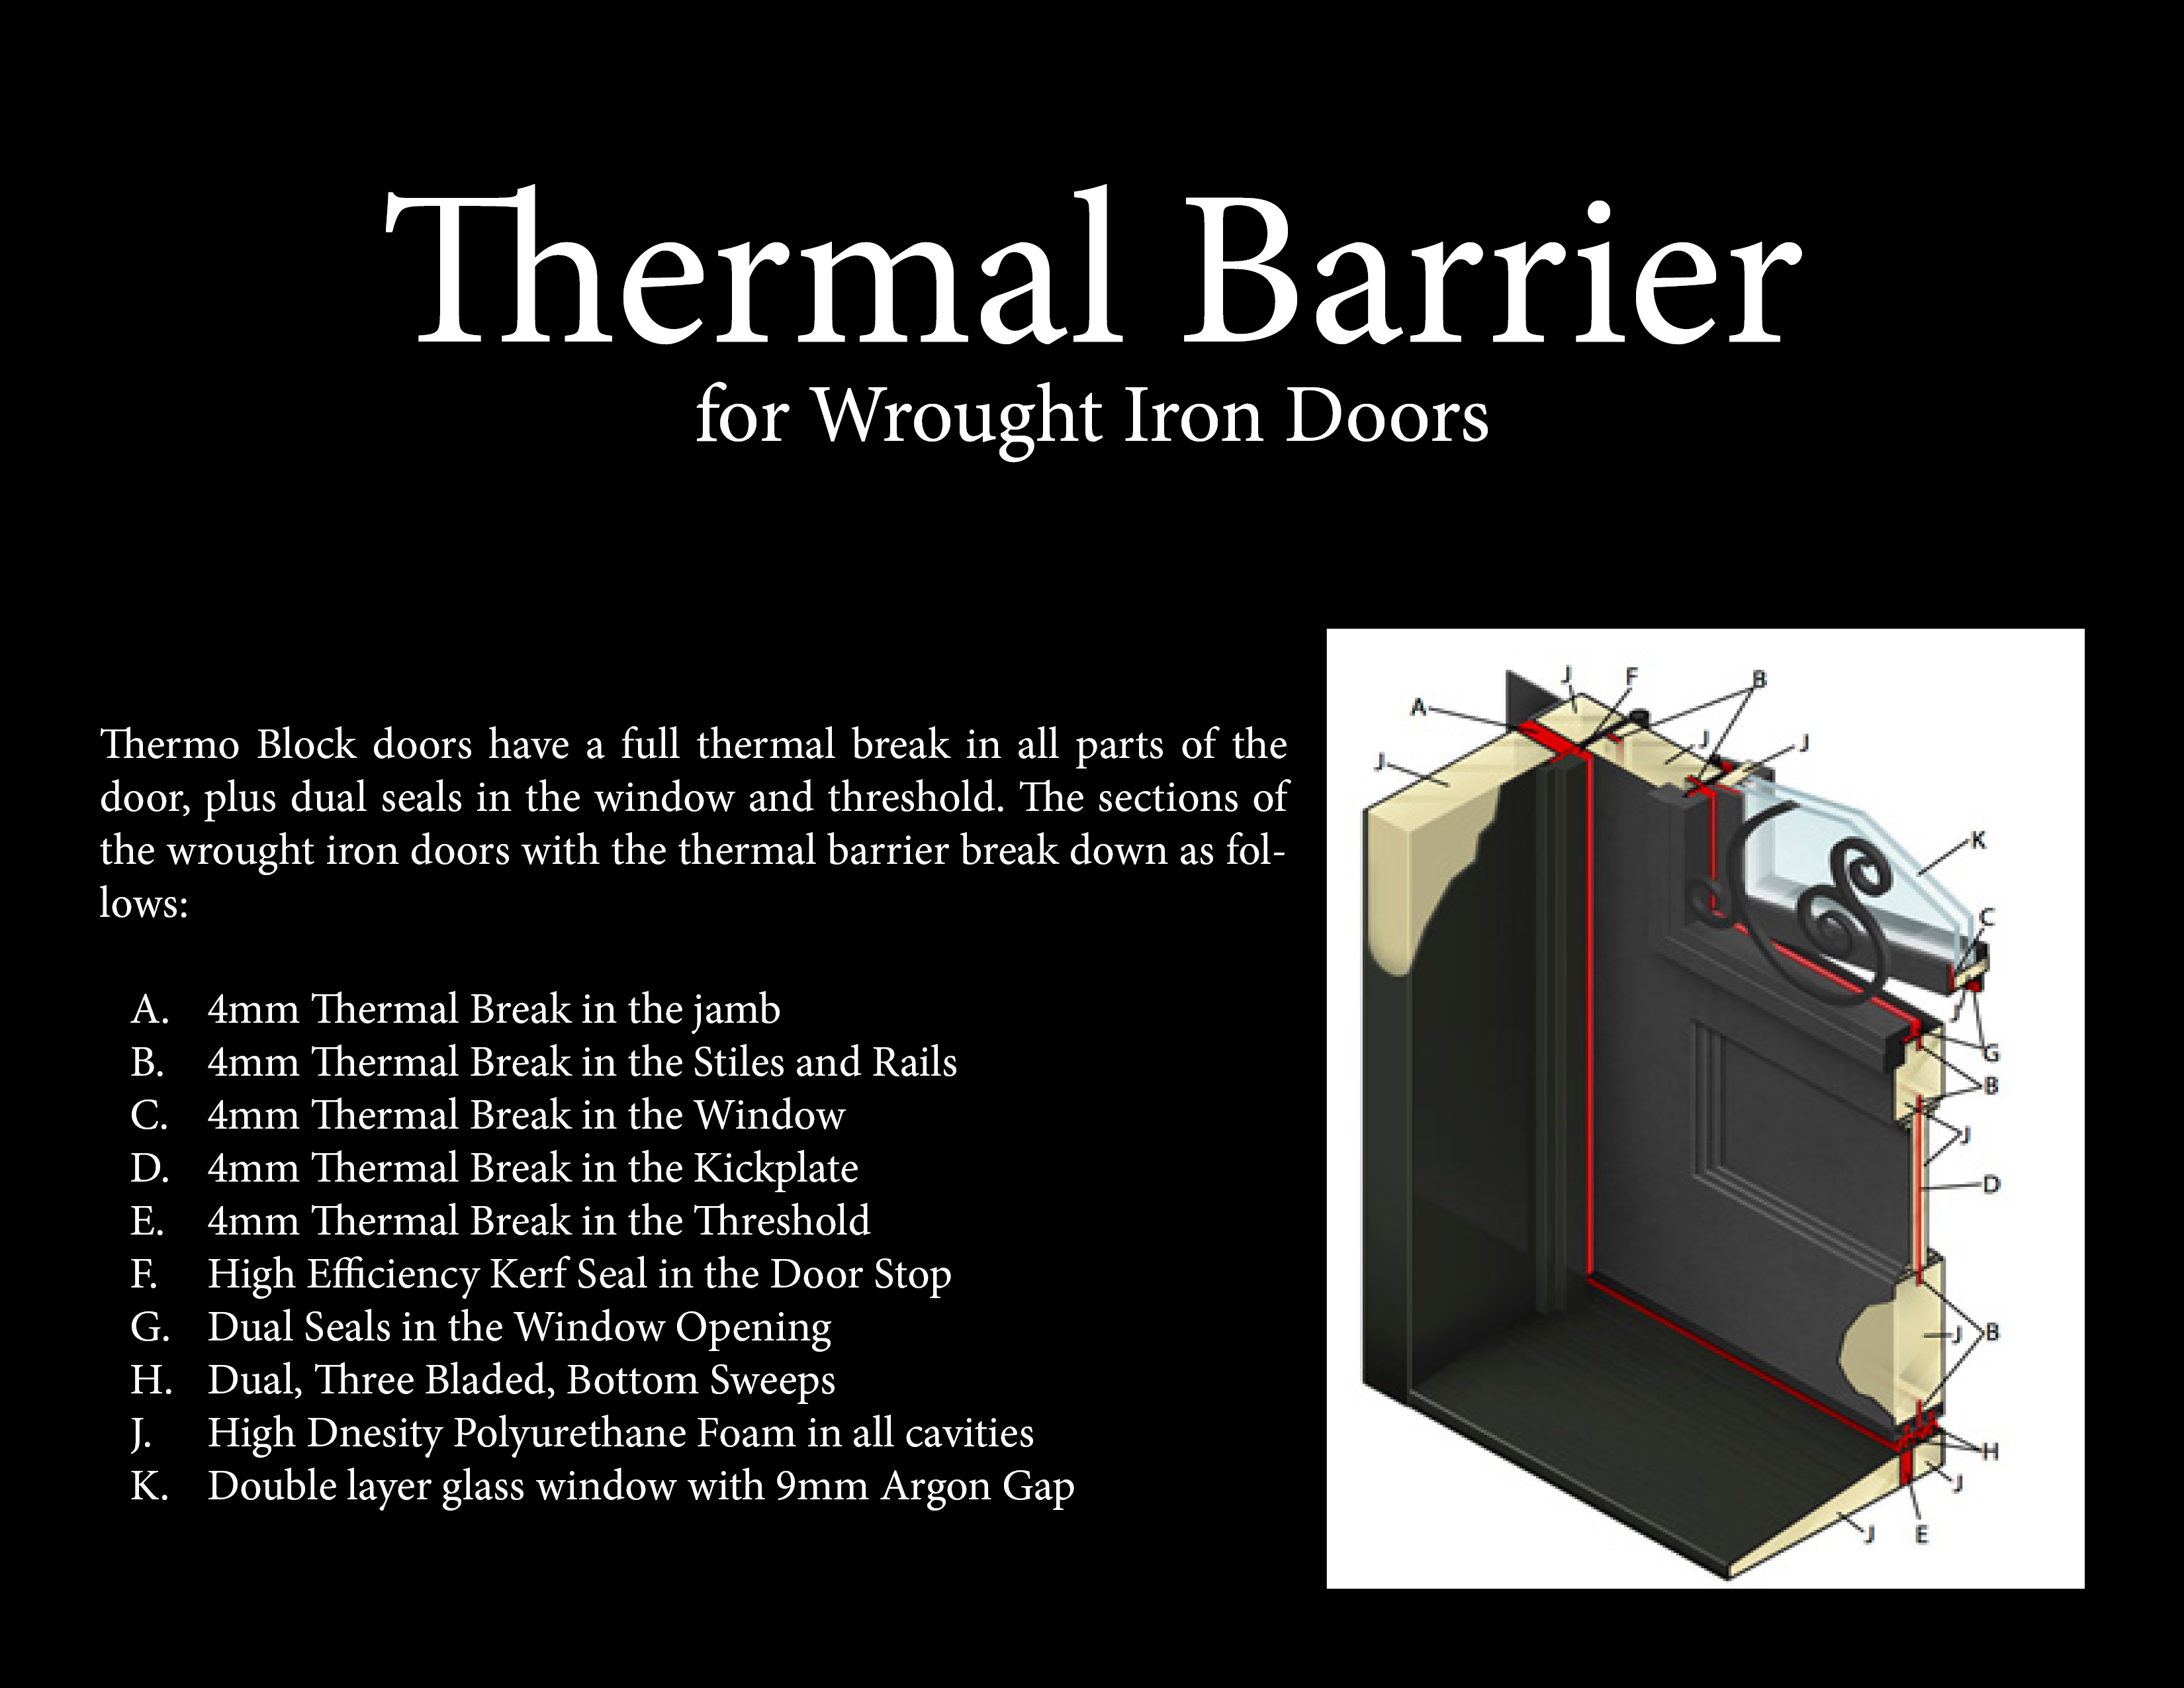 Thermal Barrier for Wrought Iron Doors